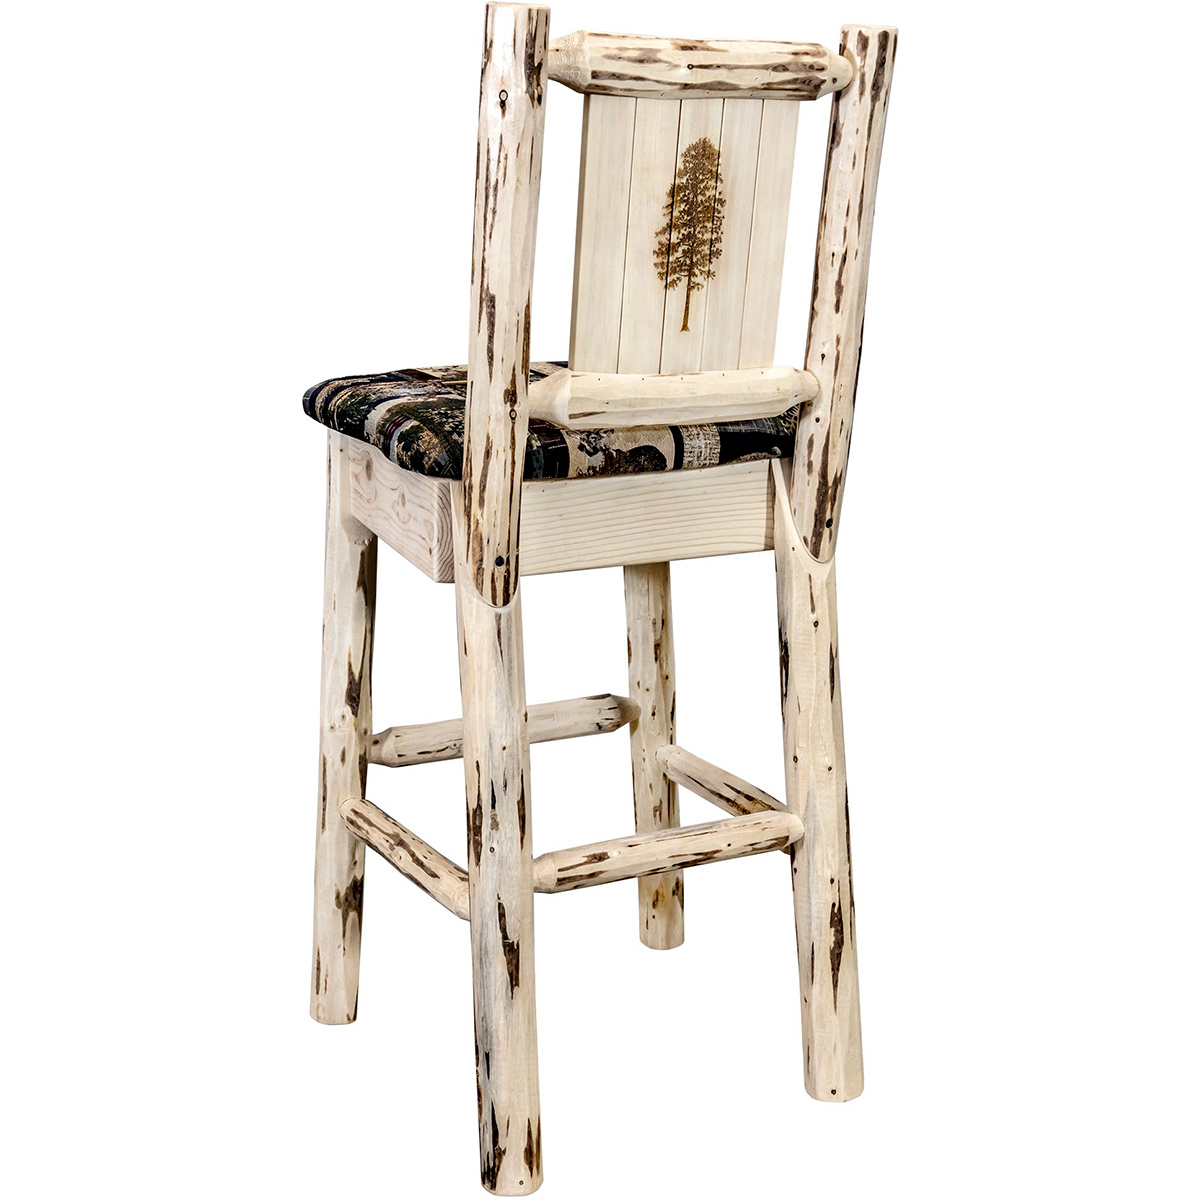 Frontier Barstool with Back & Laser-Engraved Pine Tree Design